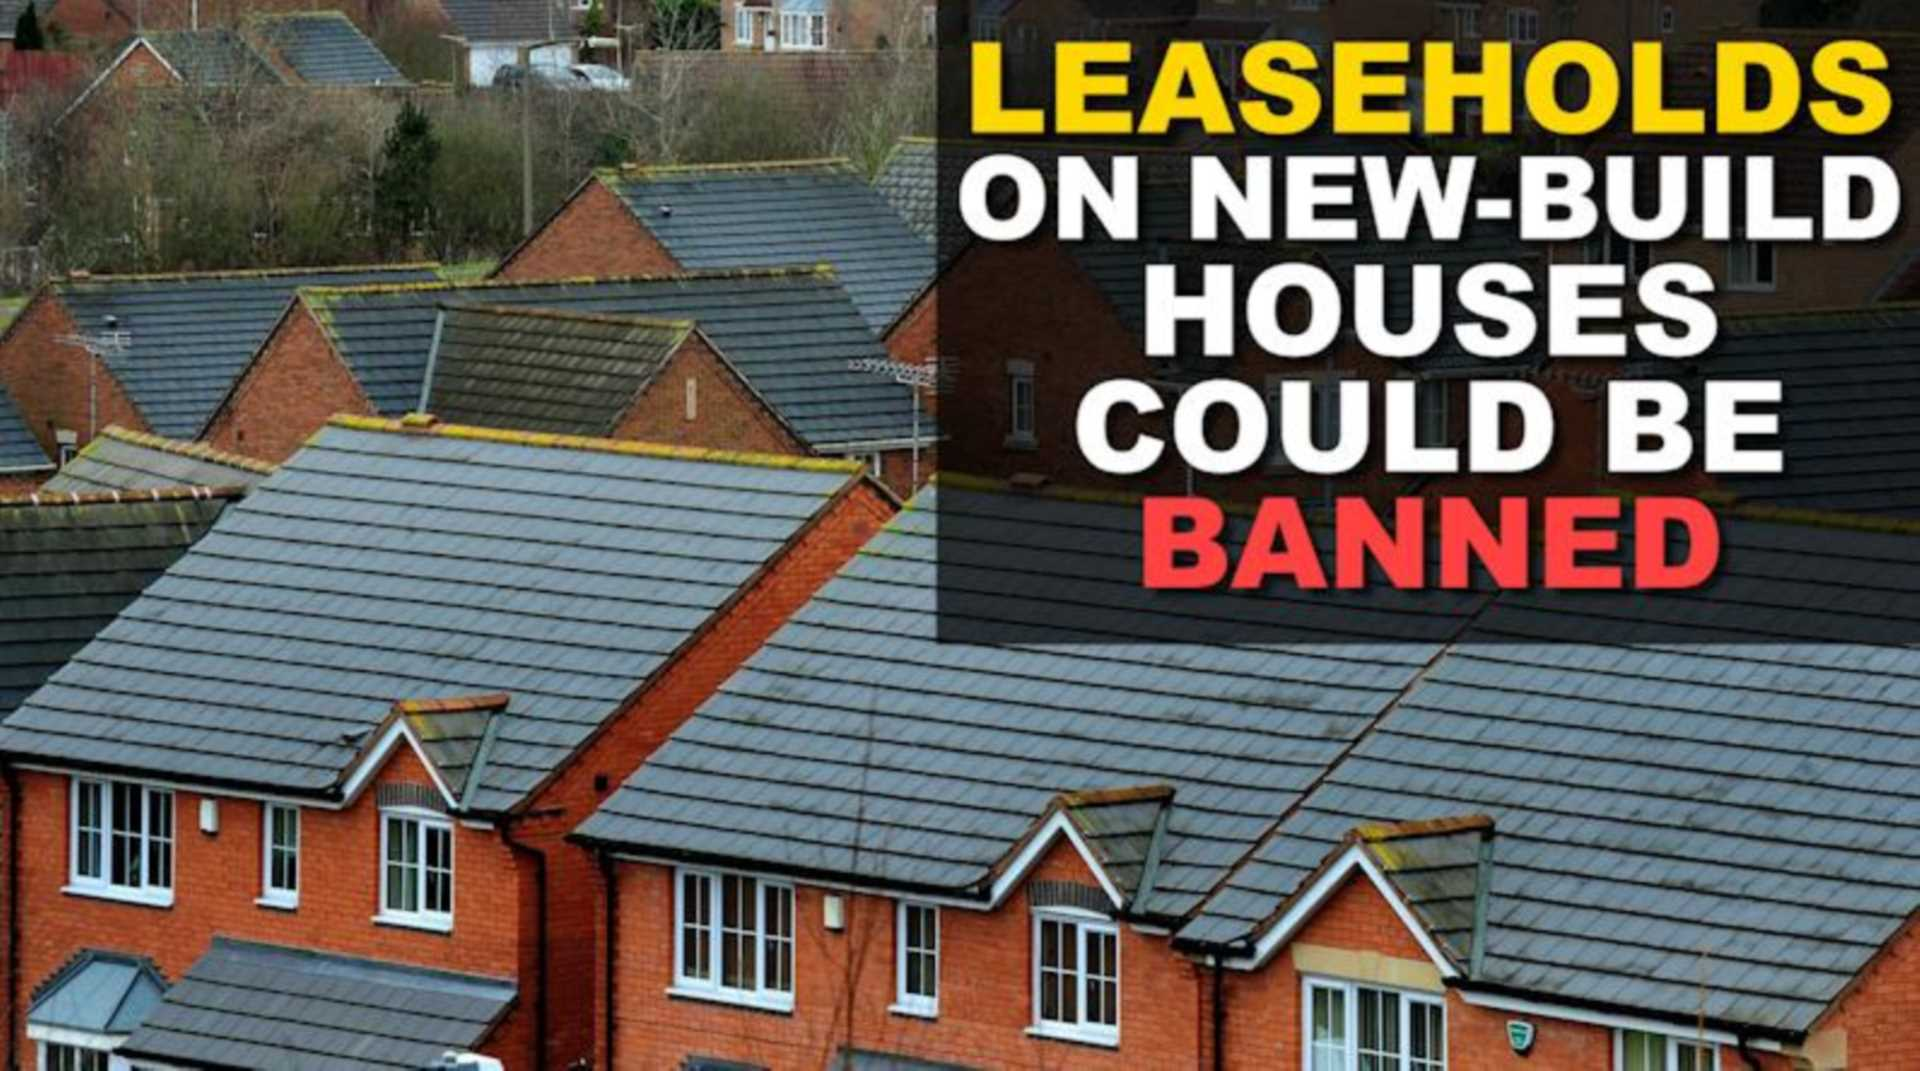 Leasehold house and developers scam